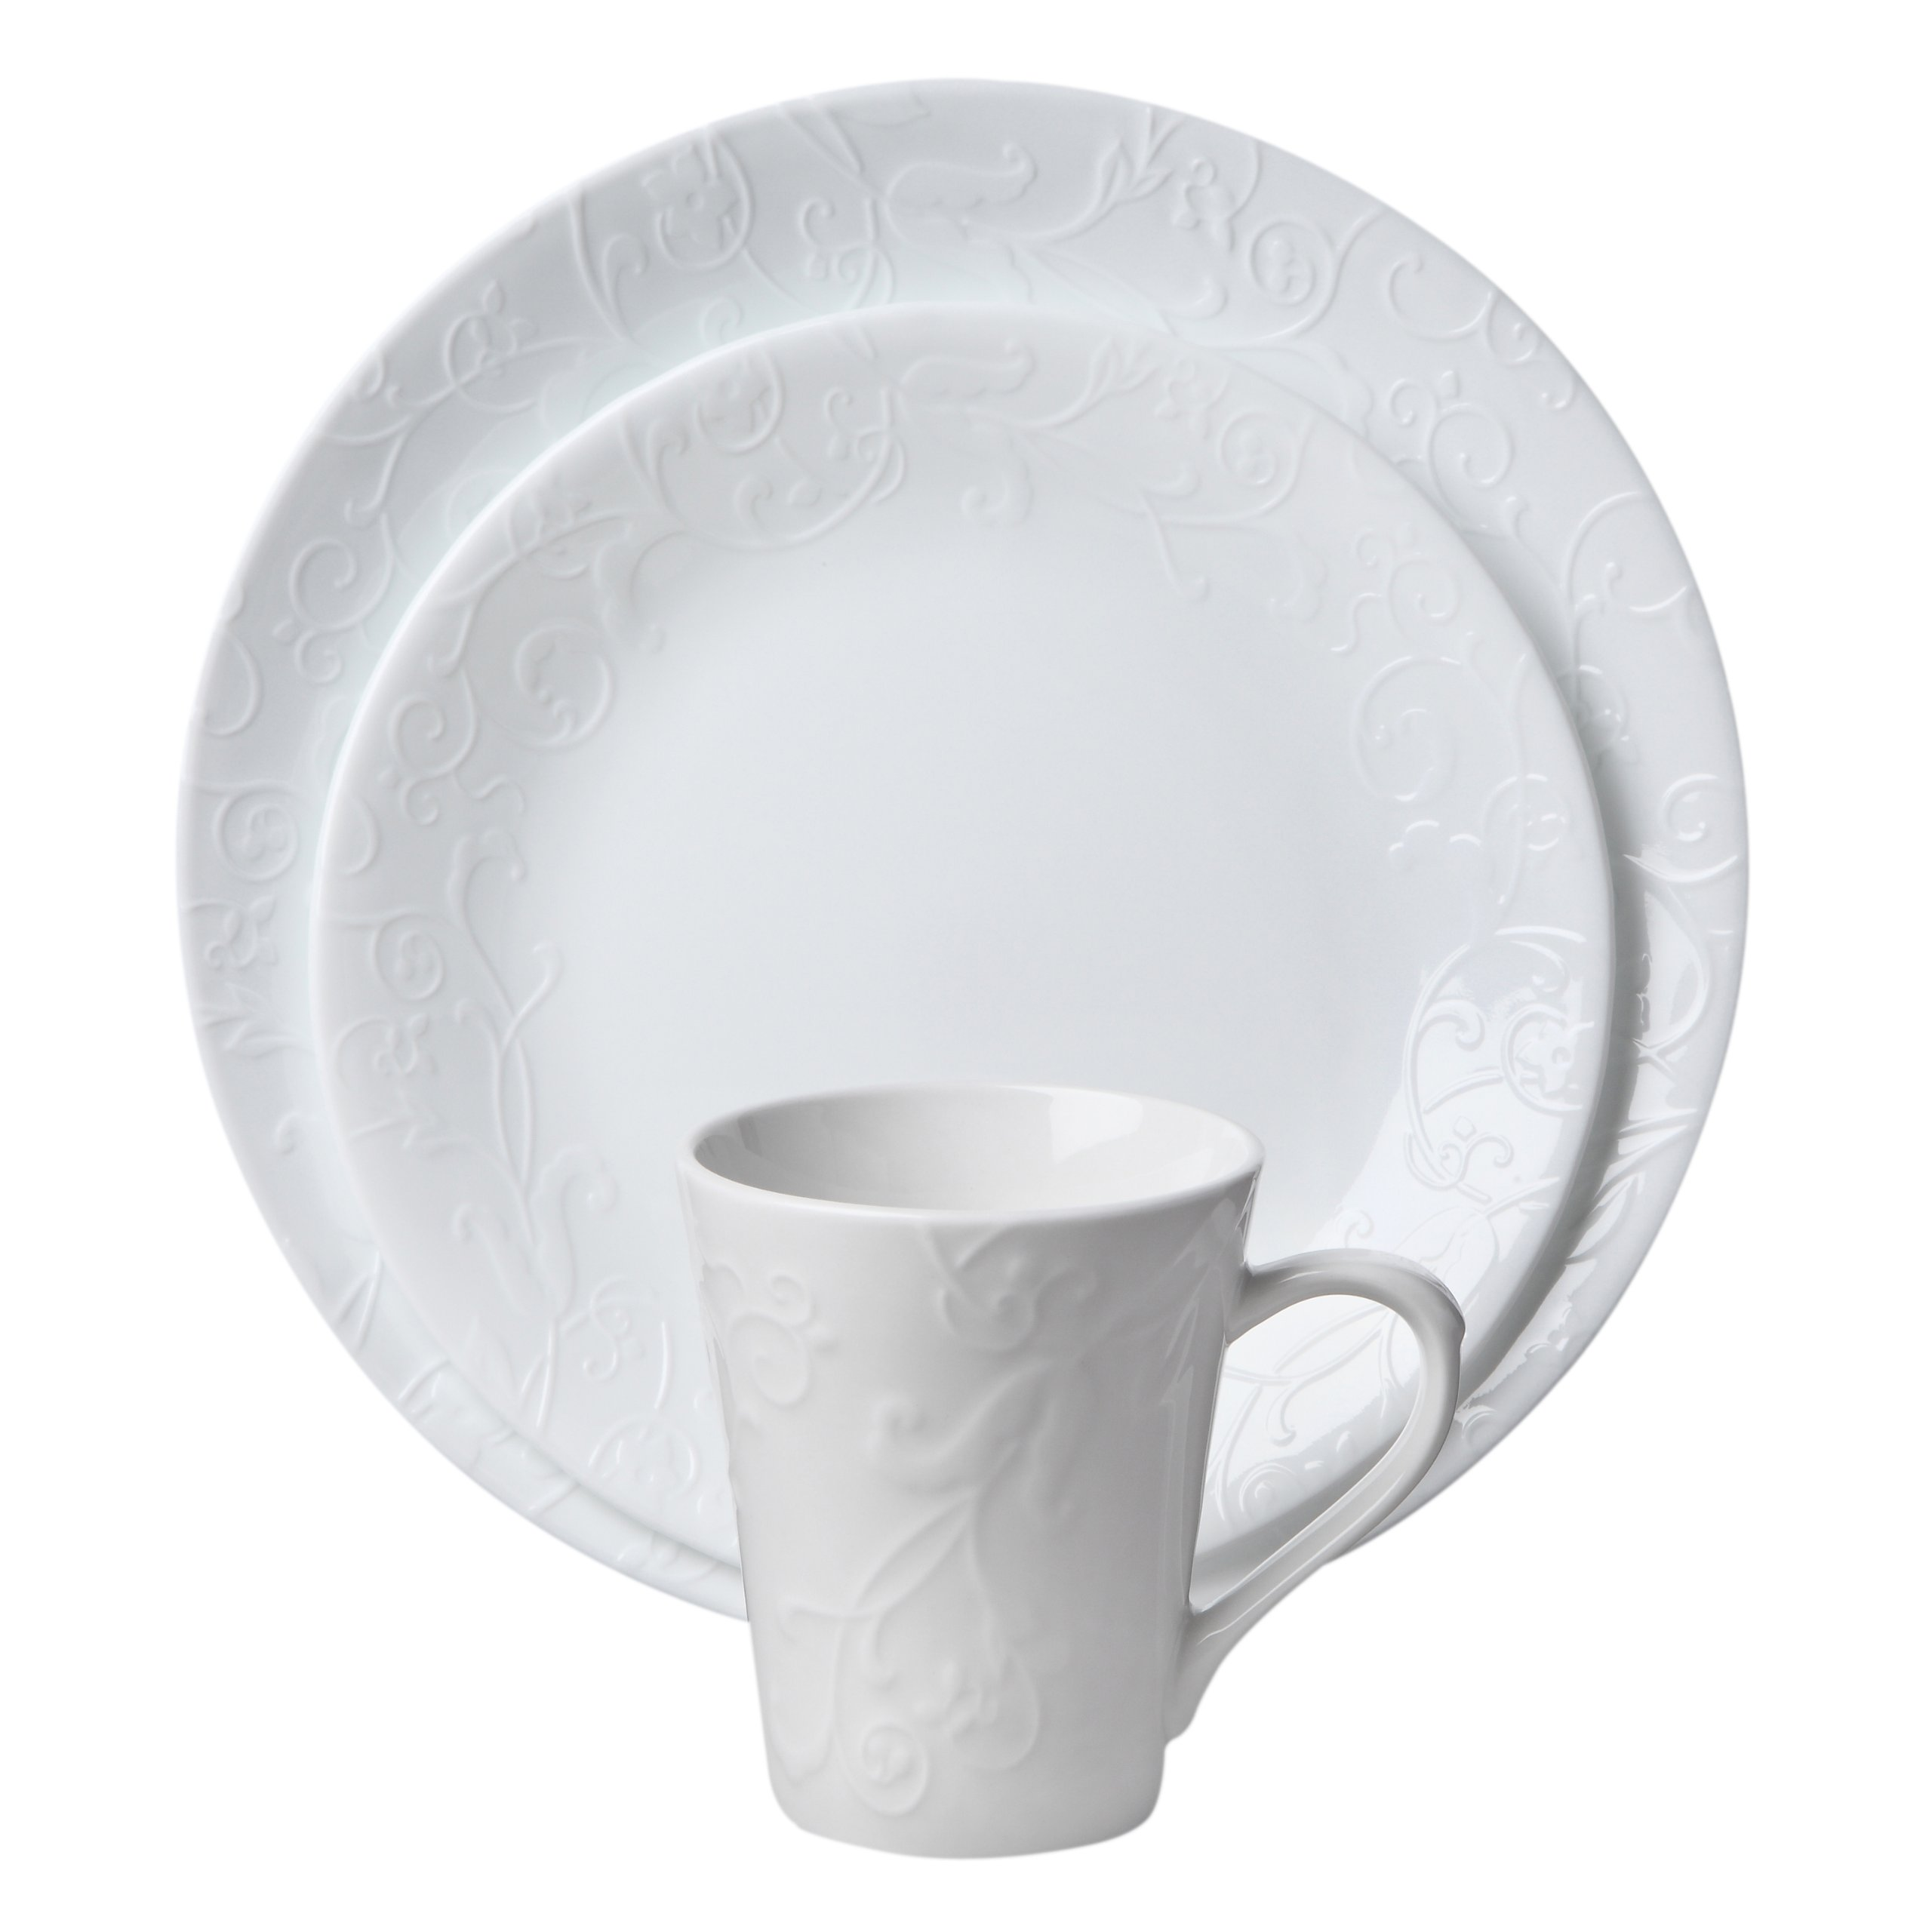 Corelle Embossed Bella Faenza 16-Piece Dinnerware Set Service for 4 White  sc 1 st  Amazon.com & Best Rated in Dinnerware Sets u0026 Helpful Customer Reviews - Amazon.com